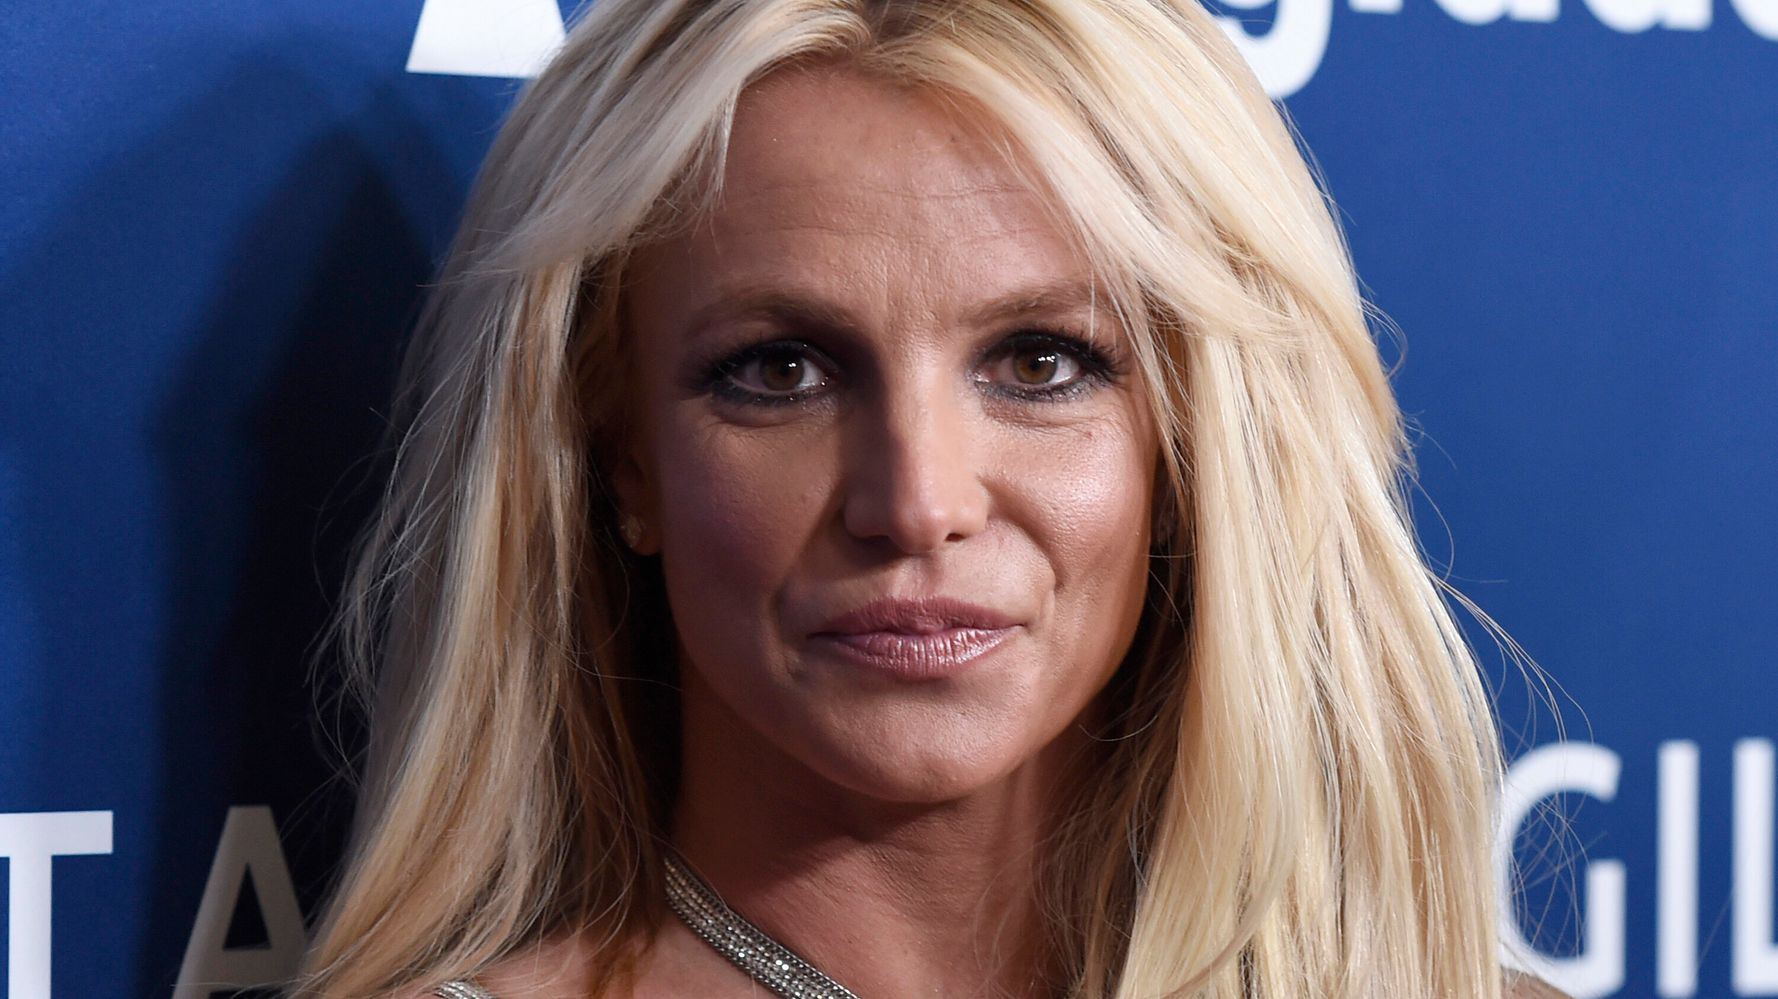 Britney Spears Makes Ominous Warning To Family Even If Conservatorship Ends